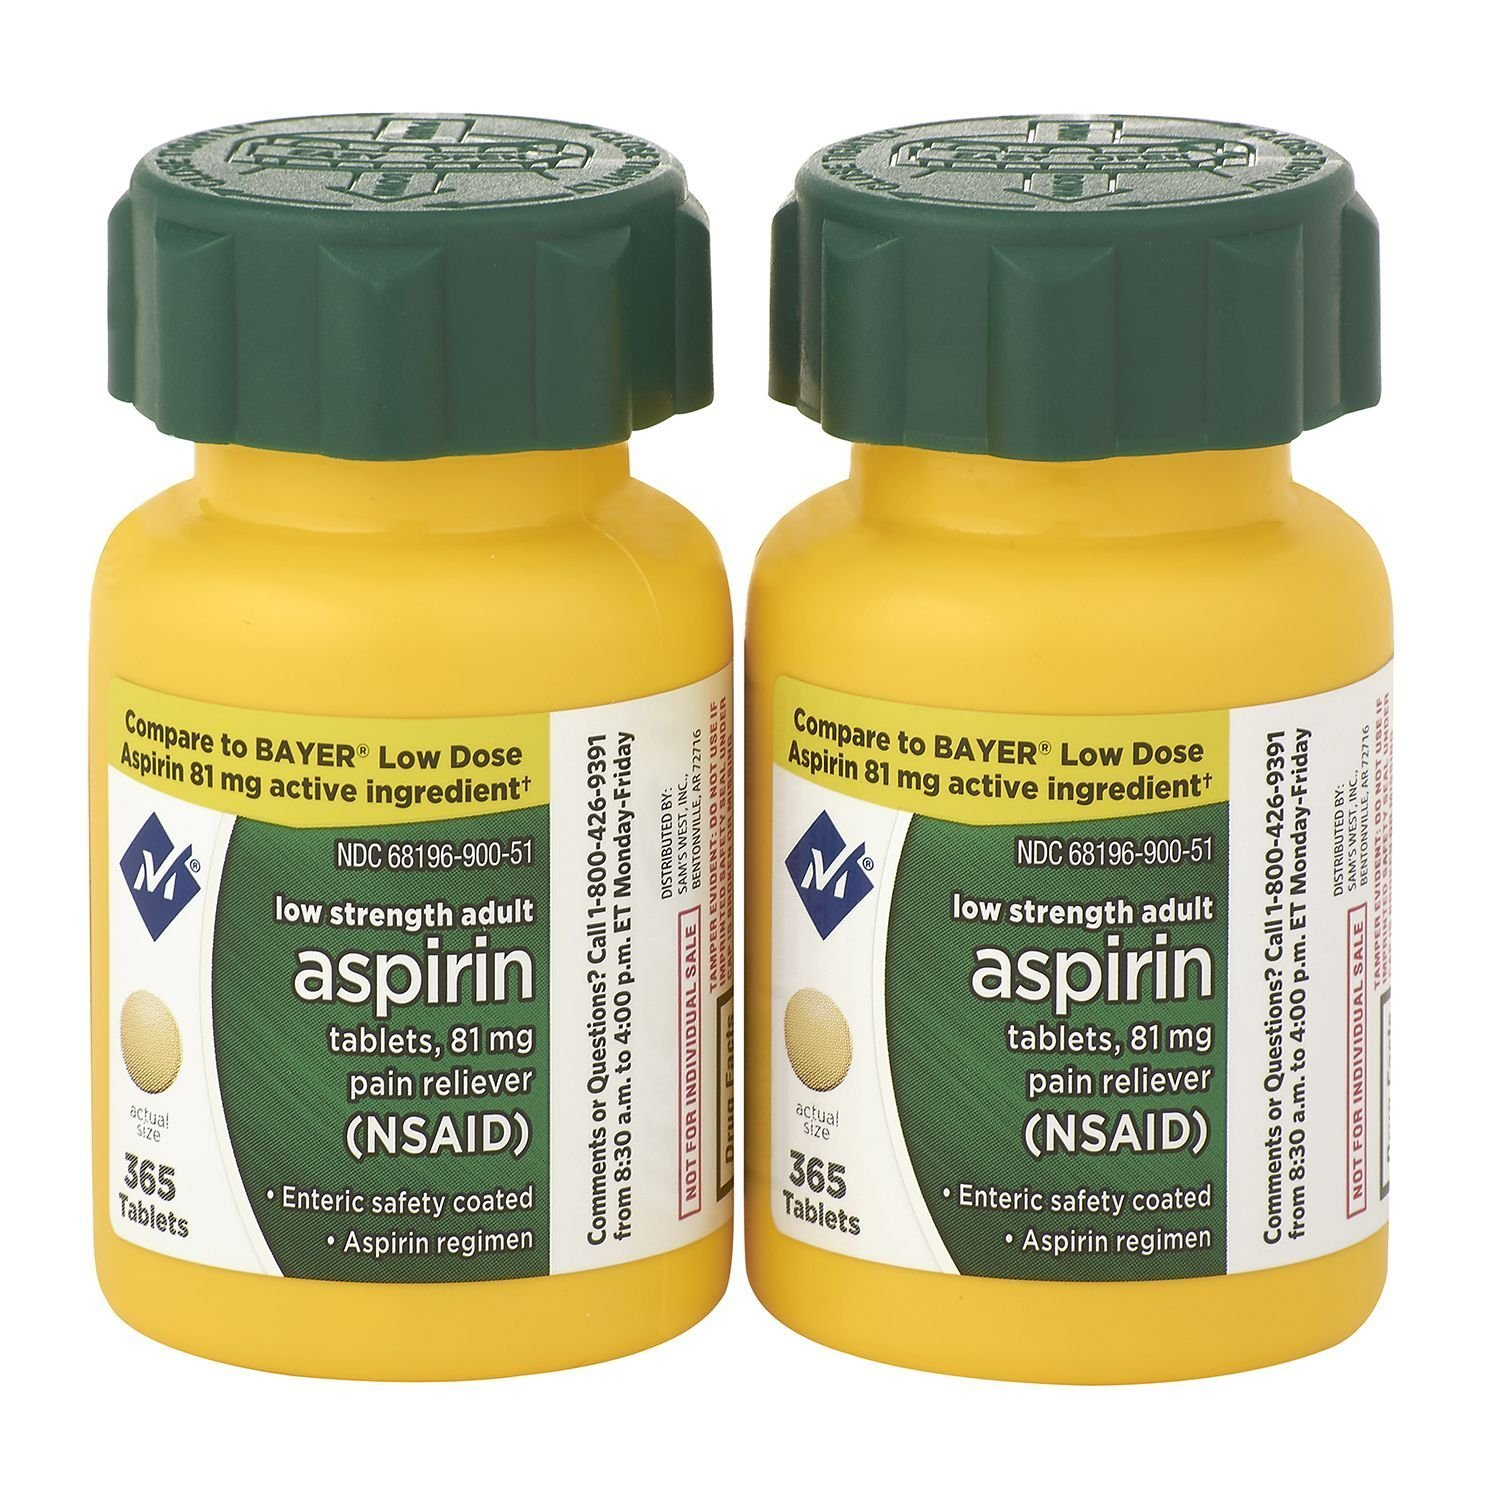 Sam's West Member's Mark Low Strength Adults Enteric Safety Coated Aspirin Regimen Tablets Pain Reliever NSAID, 81 mg, 2 Bottles, 730 Tablets